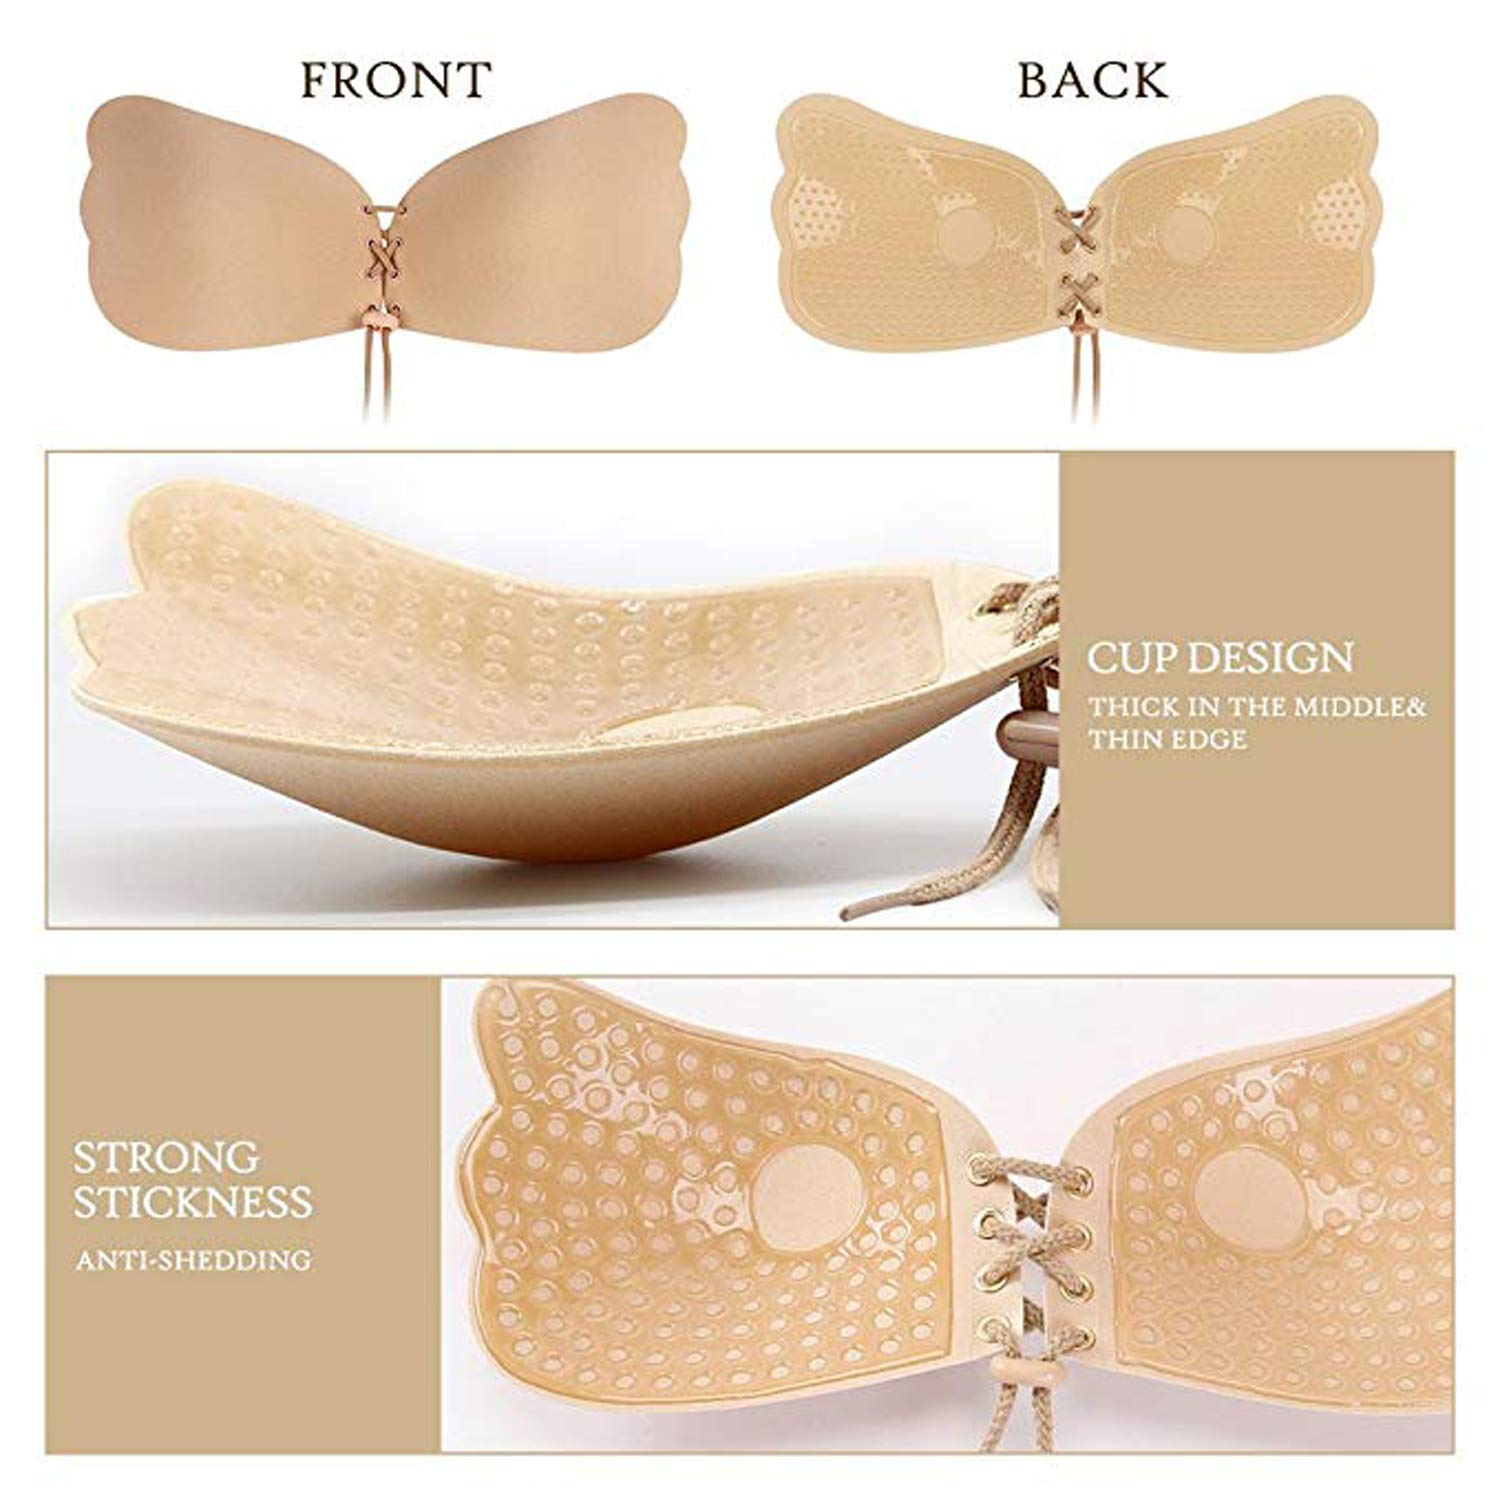 Mayper 1 Pack Self Adhesive Bra Strapless Backless Reusable Invisible Stick Push-up Silicone Bras